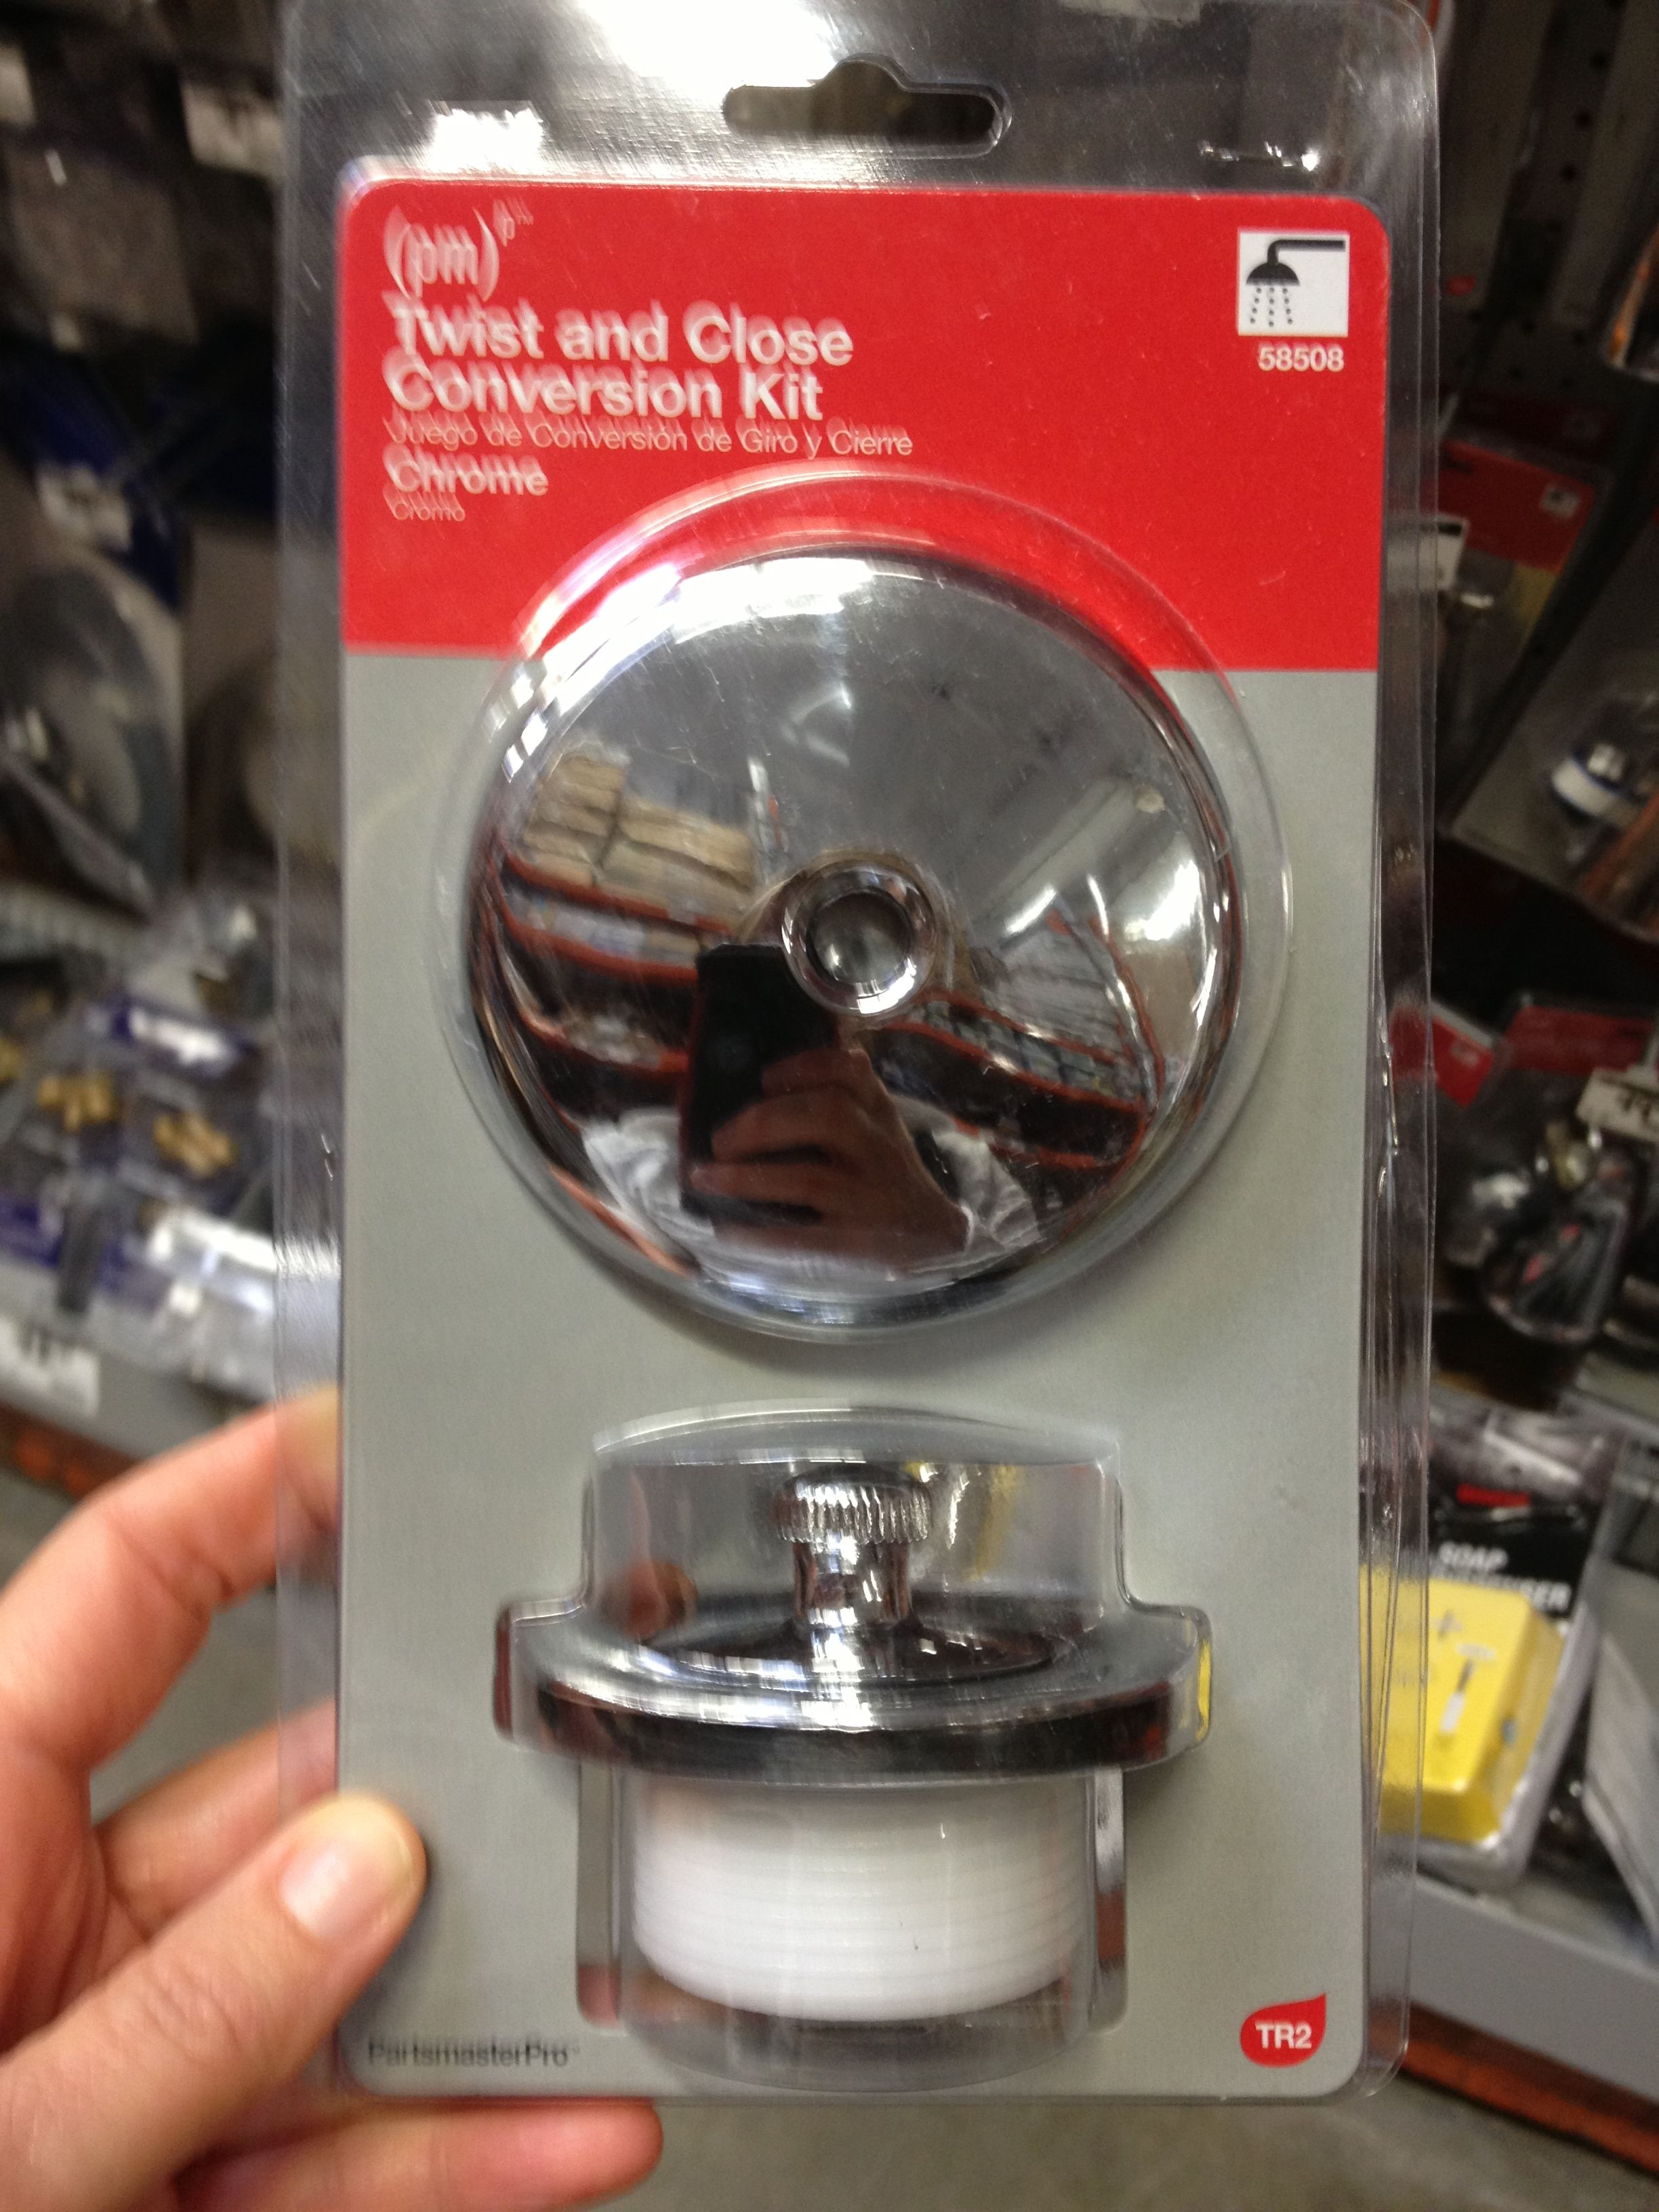 Twist and close conversion kit Home Depot $16.97